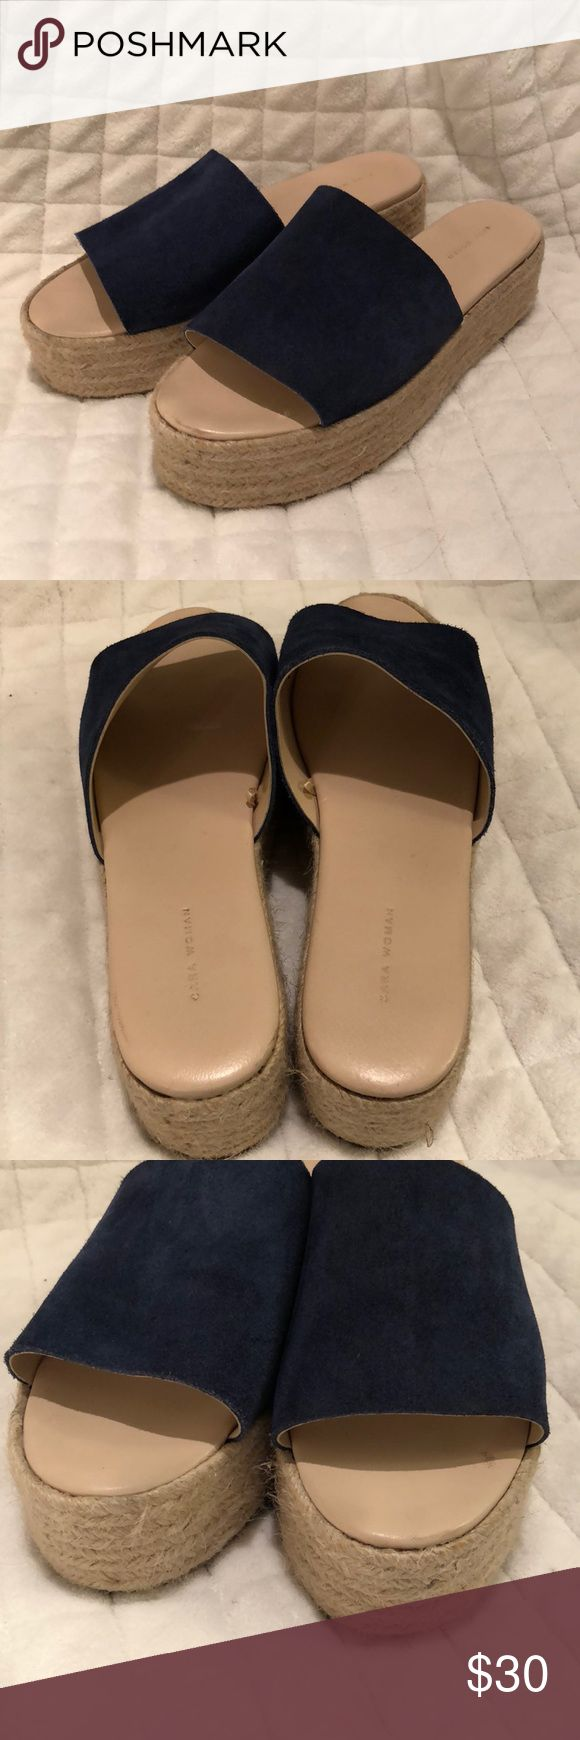 Zara Navy Espadrilles size 38 Zara navy suede espadrilles slip on sandals.  These are size 38, but the suede part seems to fit like a US 8.5-9 women's.  Please see pics for the lite wear they show, even on bottoms.   In very good, litely used condition. Zara Shoes Espadrilles